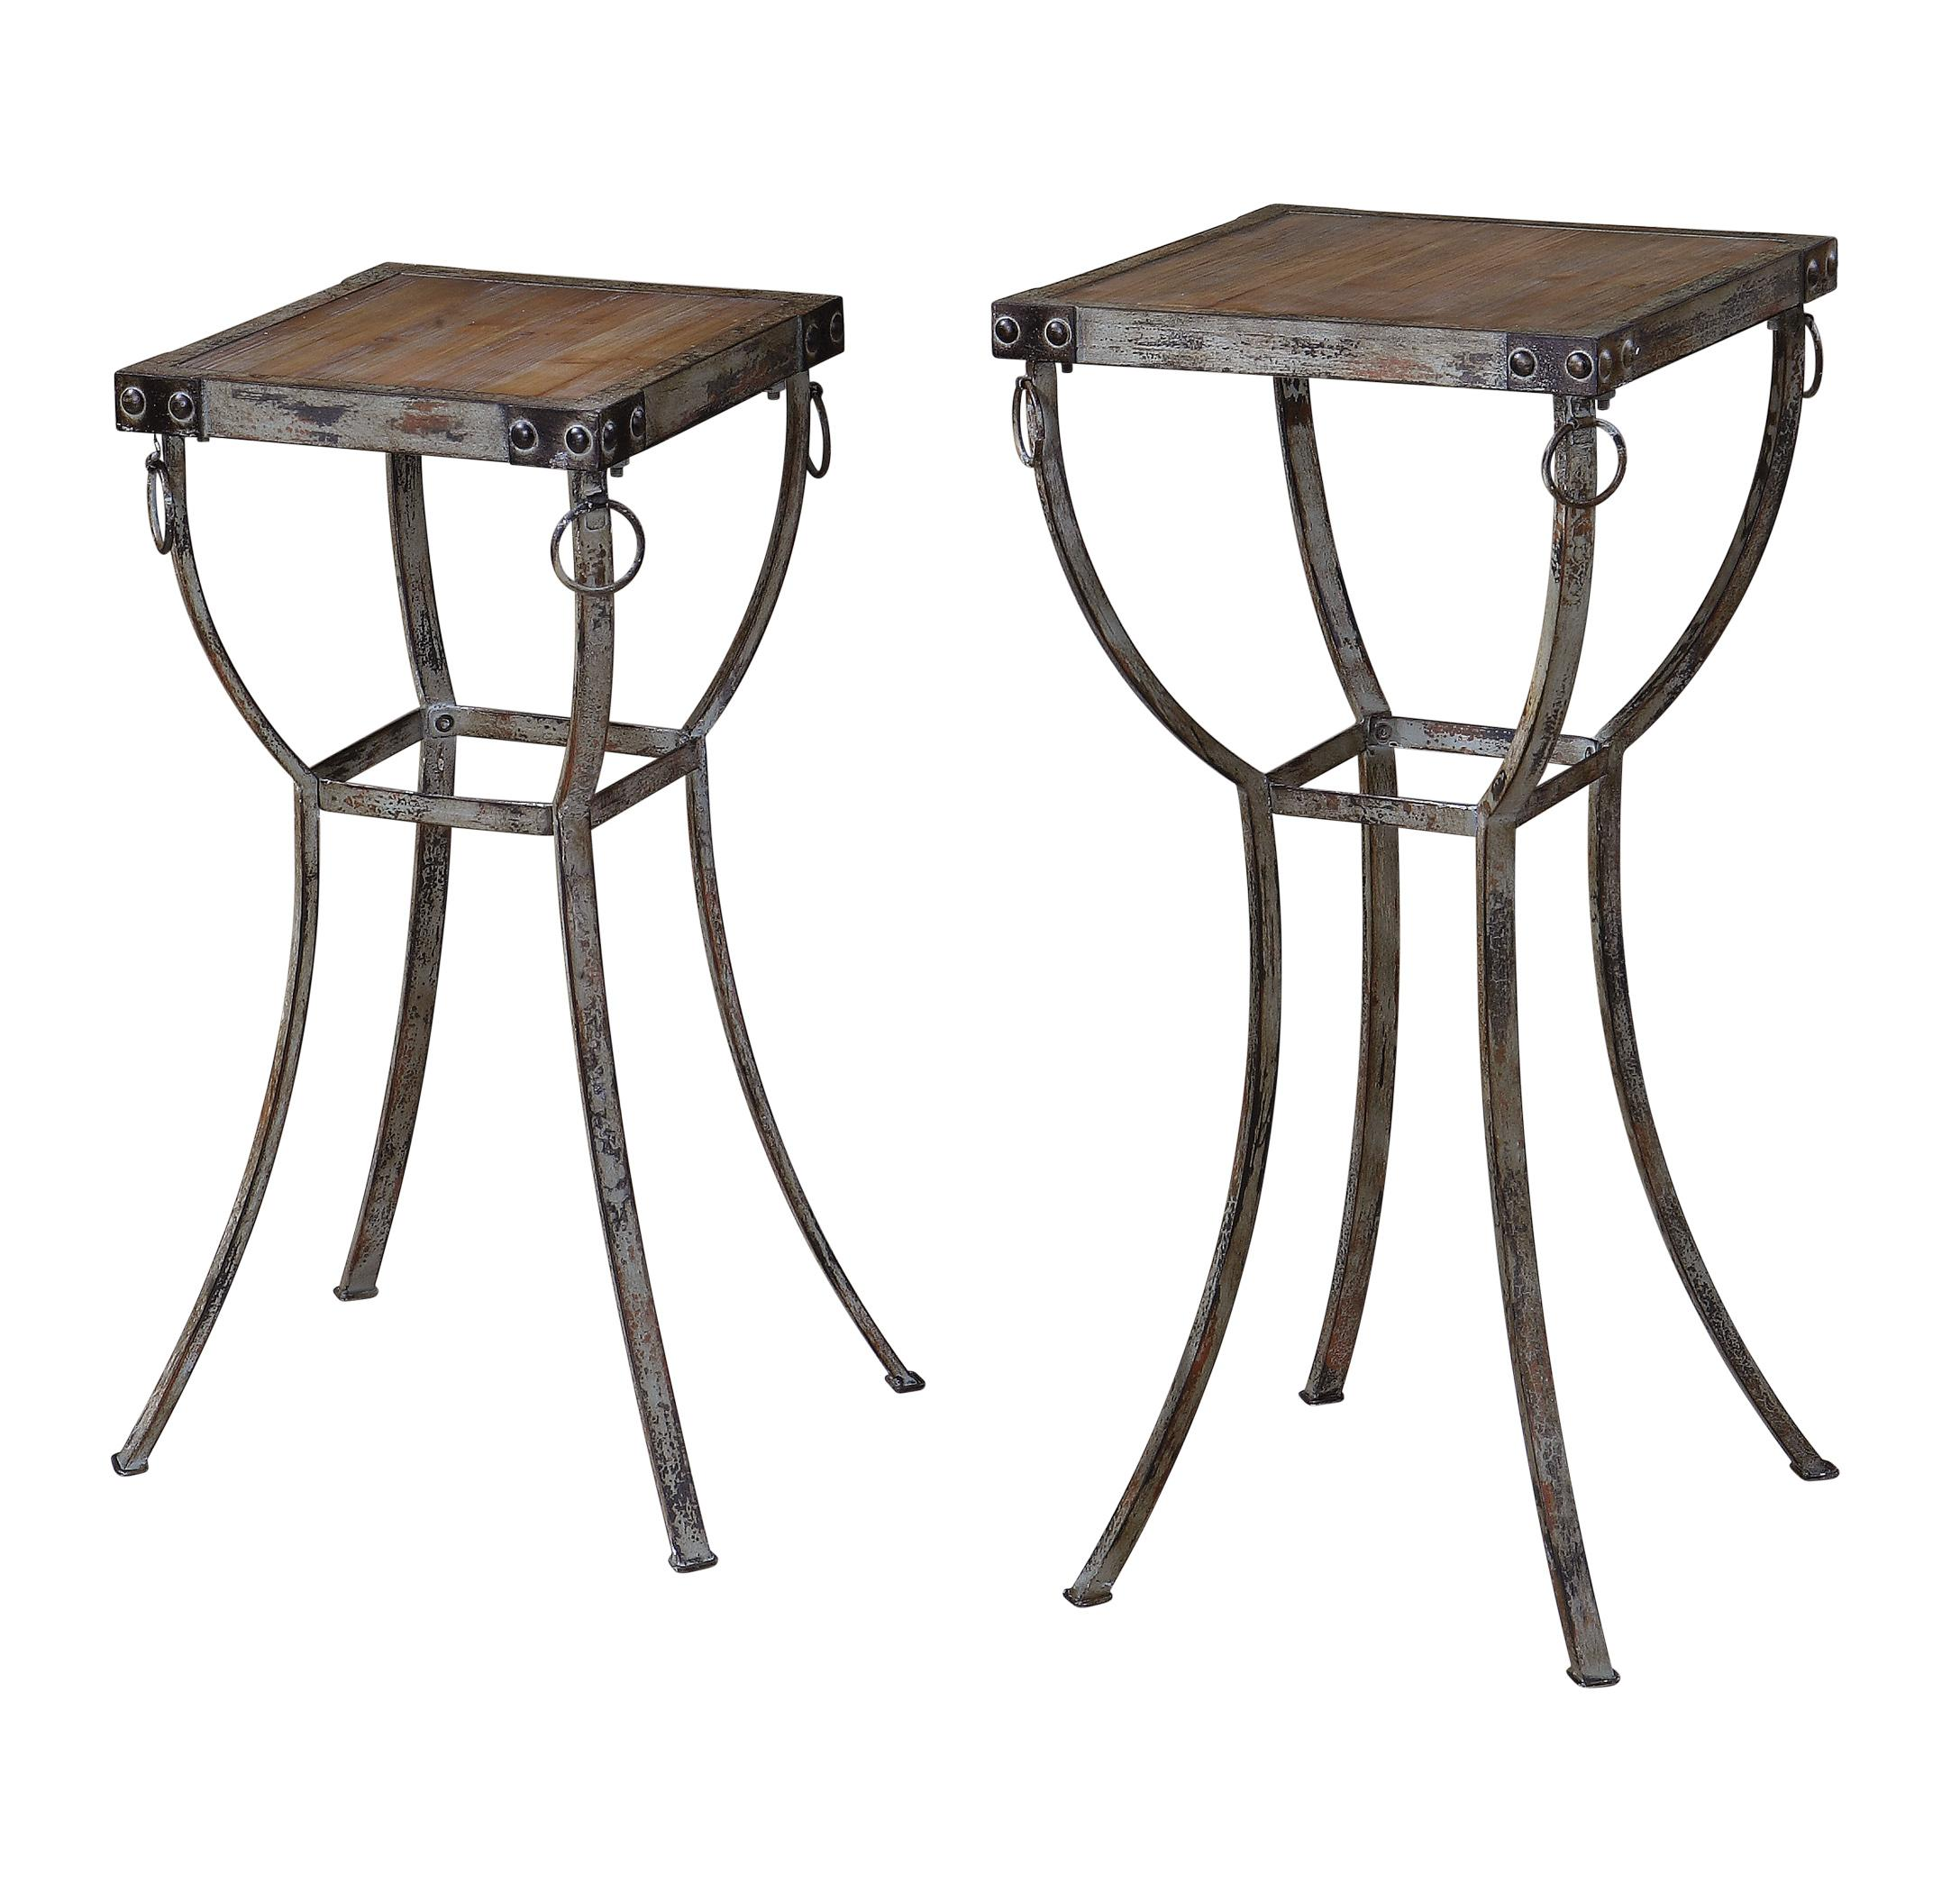 Uttermost Accent Furniture Hewson Plant Stands Set of 2 - Item Number: 24313